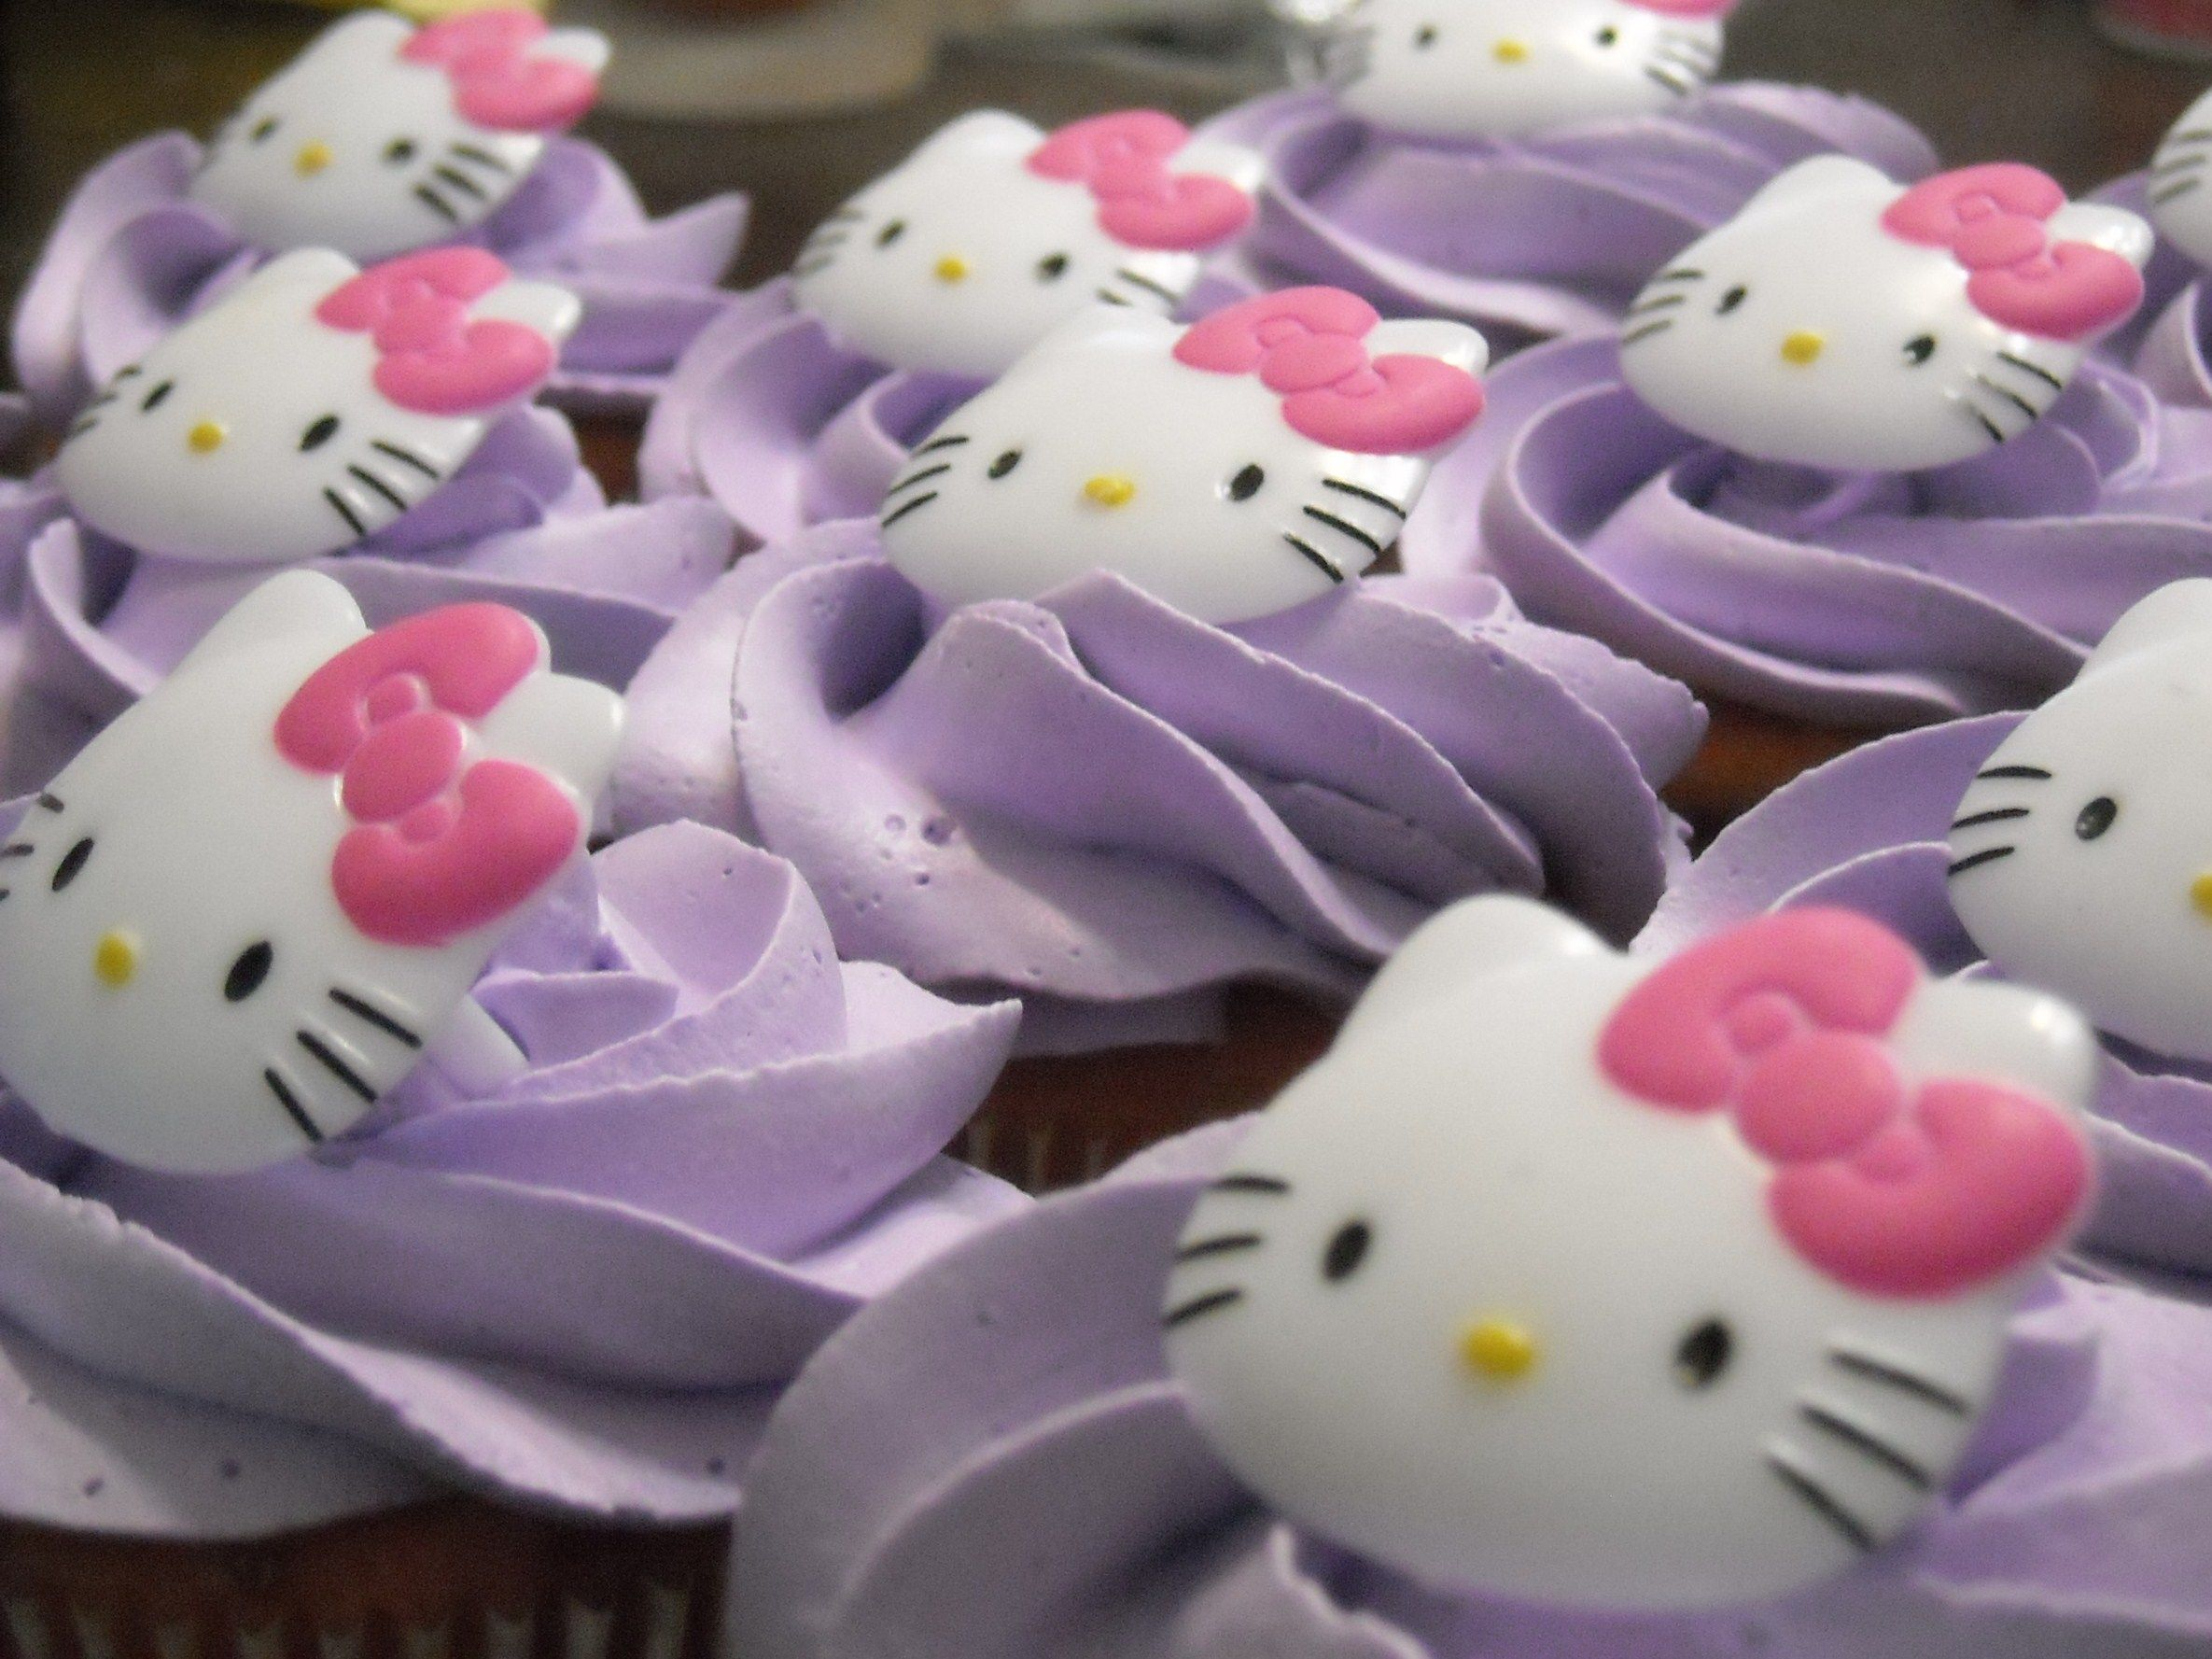 Google Images Hello Kitty Cake : hello kitty cupcakes - Google Search Elin s 3rd Birthday ...